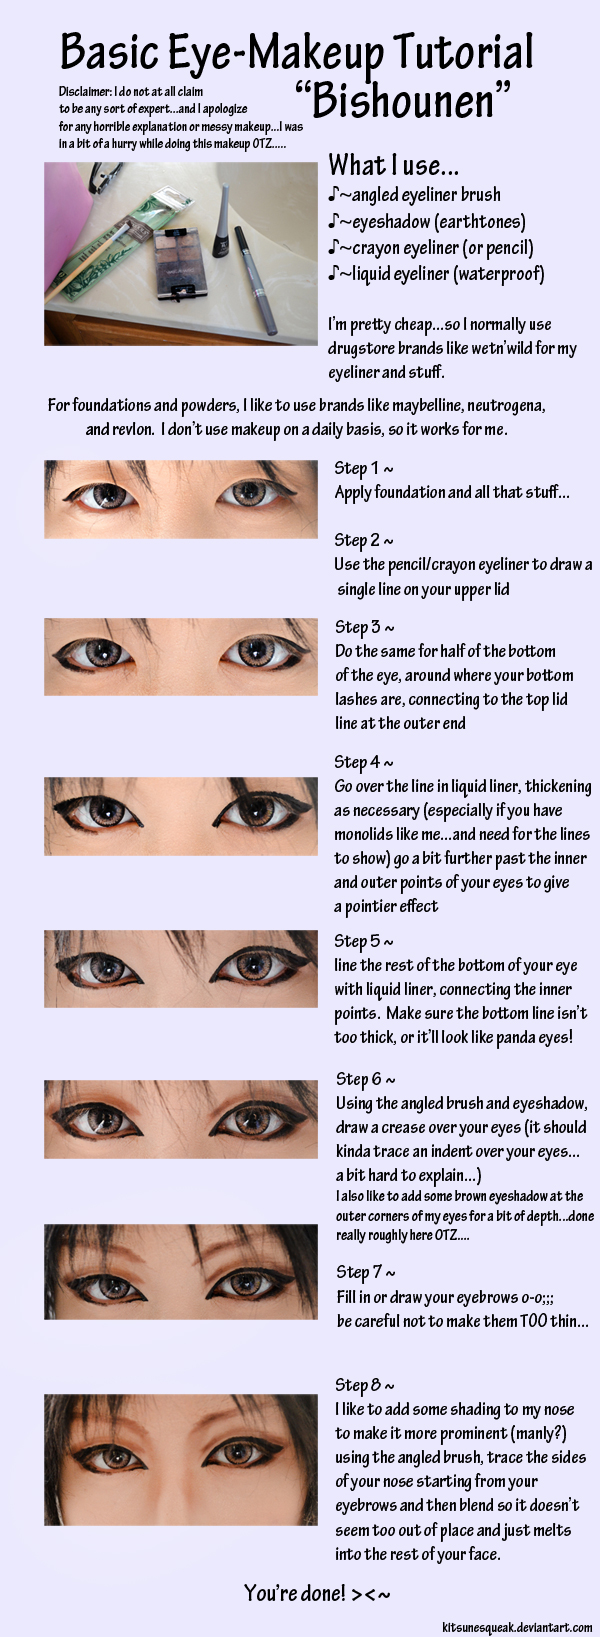 Eye Make-Up Tutorial for a More Vivid Cosplay Look